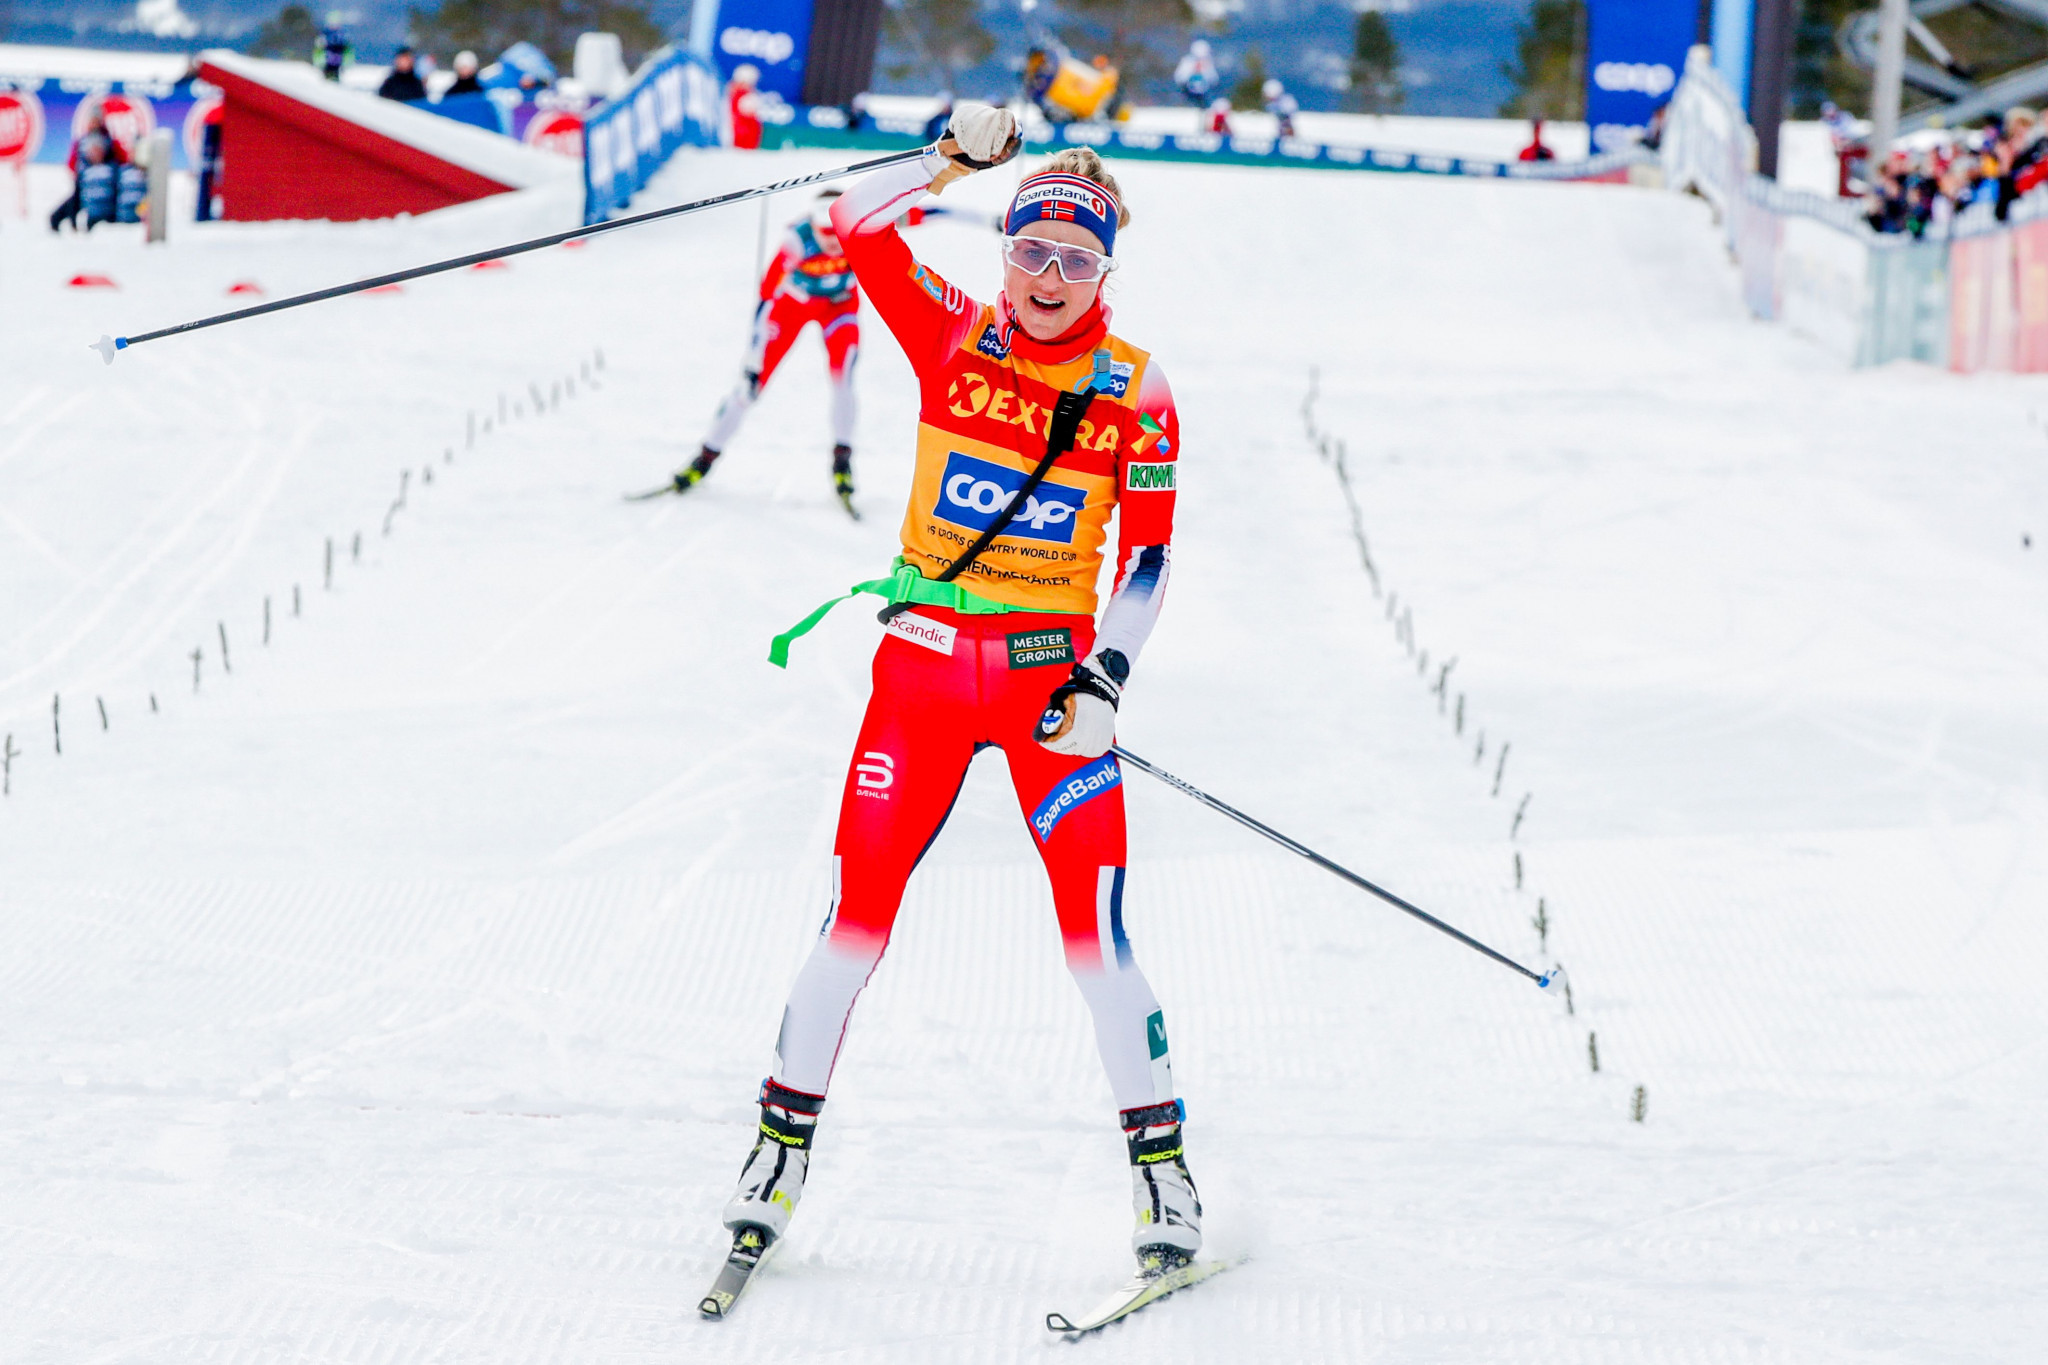 Johaug and Golberg win Ski Tour titles at FIS Cross-Country World Cup